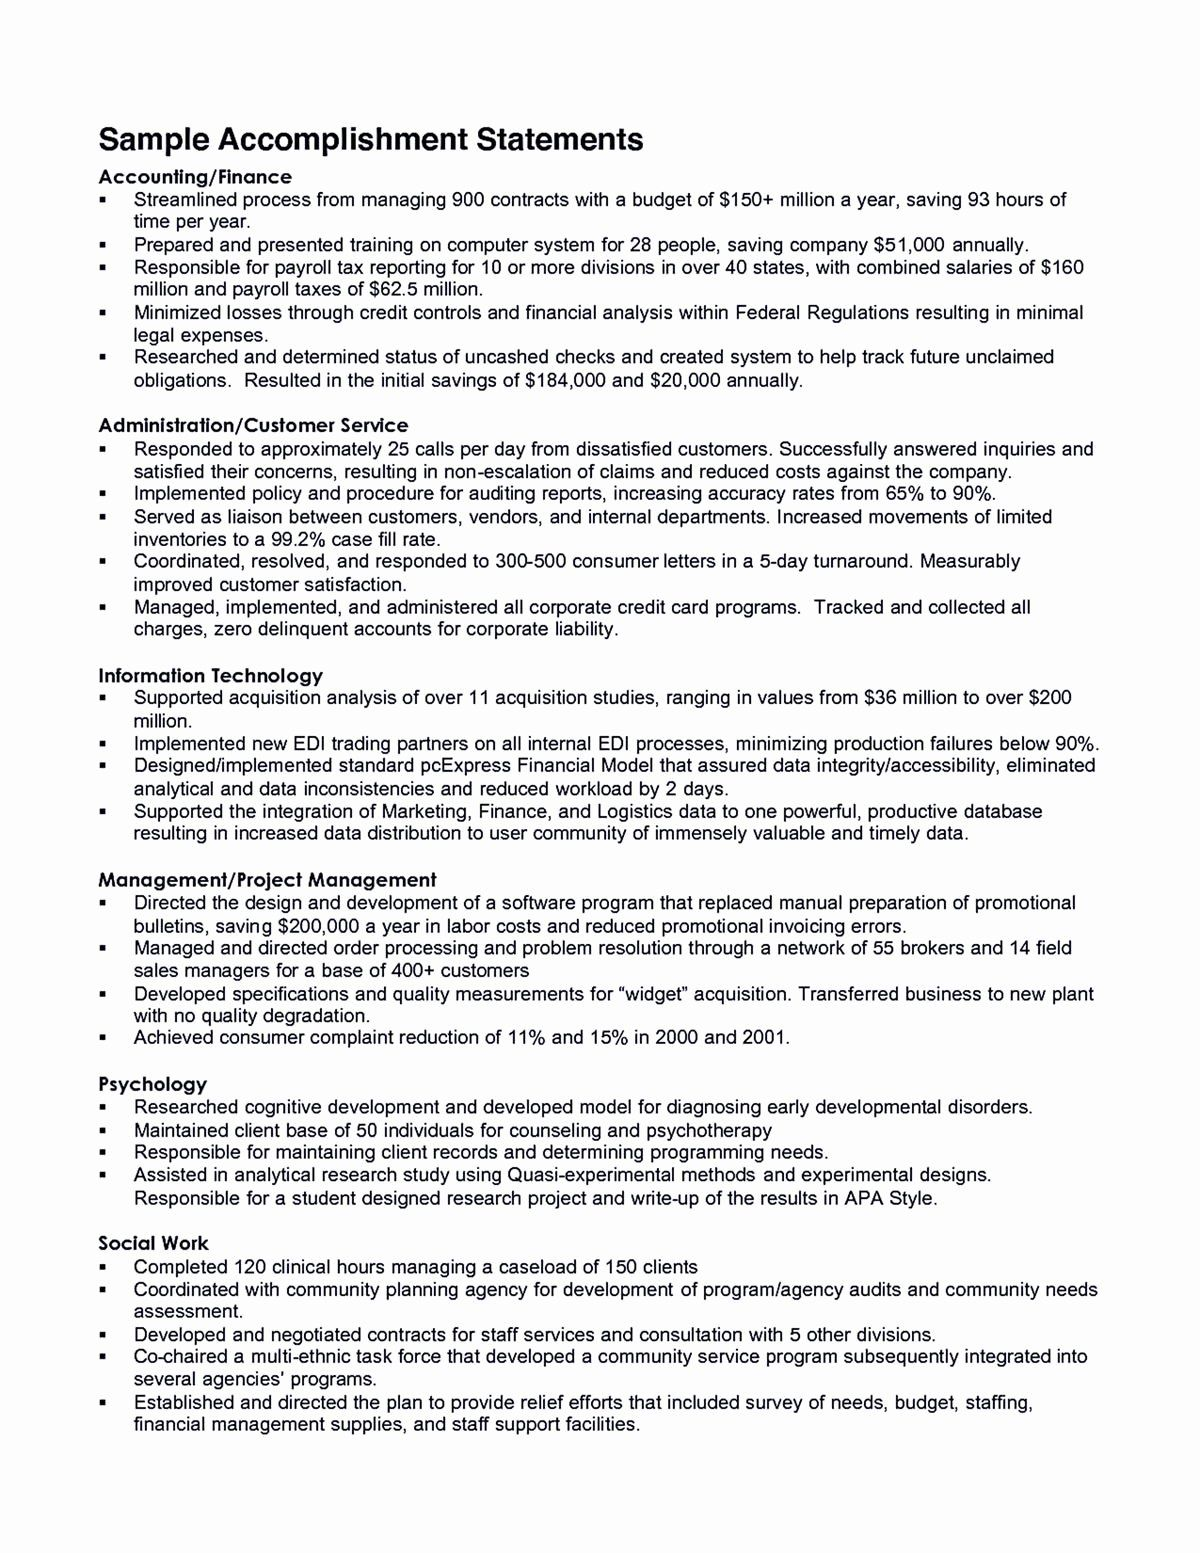 Awards And Achievements In Resume Example Beautiful Good Ac Plishments For A Resume Resume Summary Examples Cover Letter For Resume Resume Objective Sample